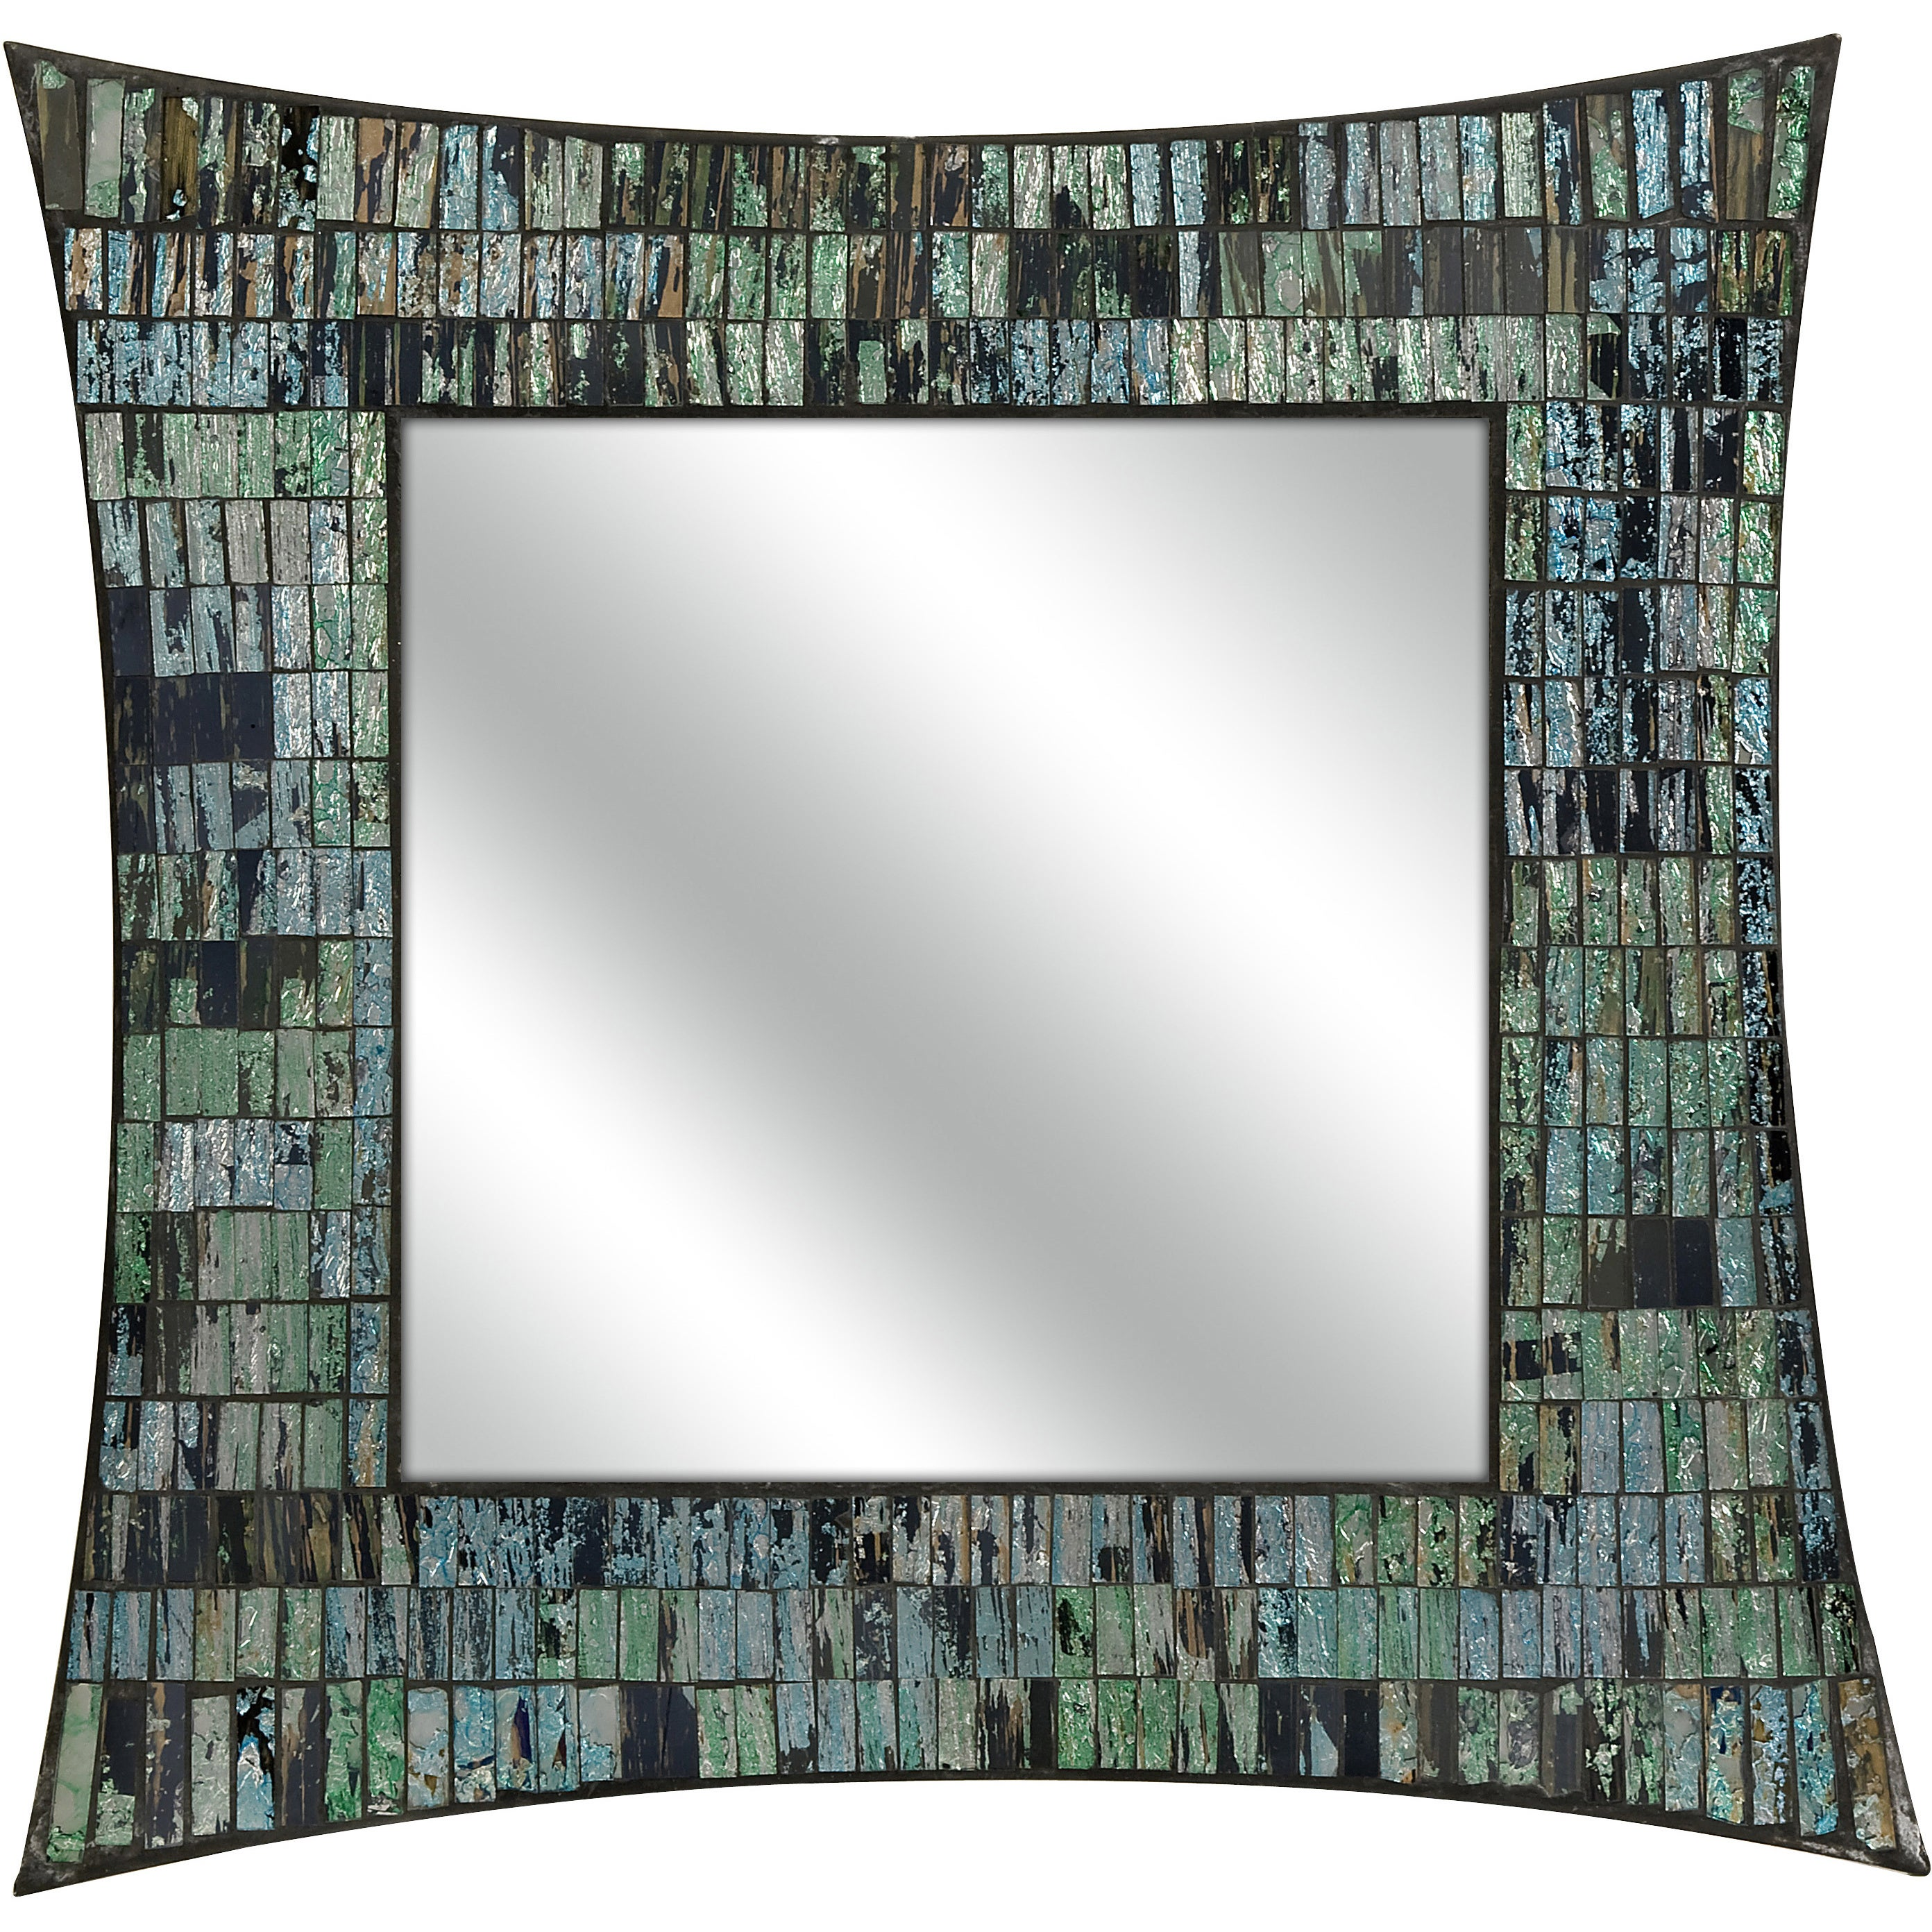 Aramis Mosaic Glass Wall Mirror - Free Shipping Today - Overstock.com -  16841754